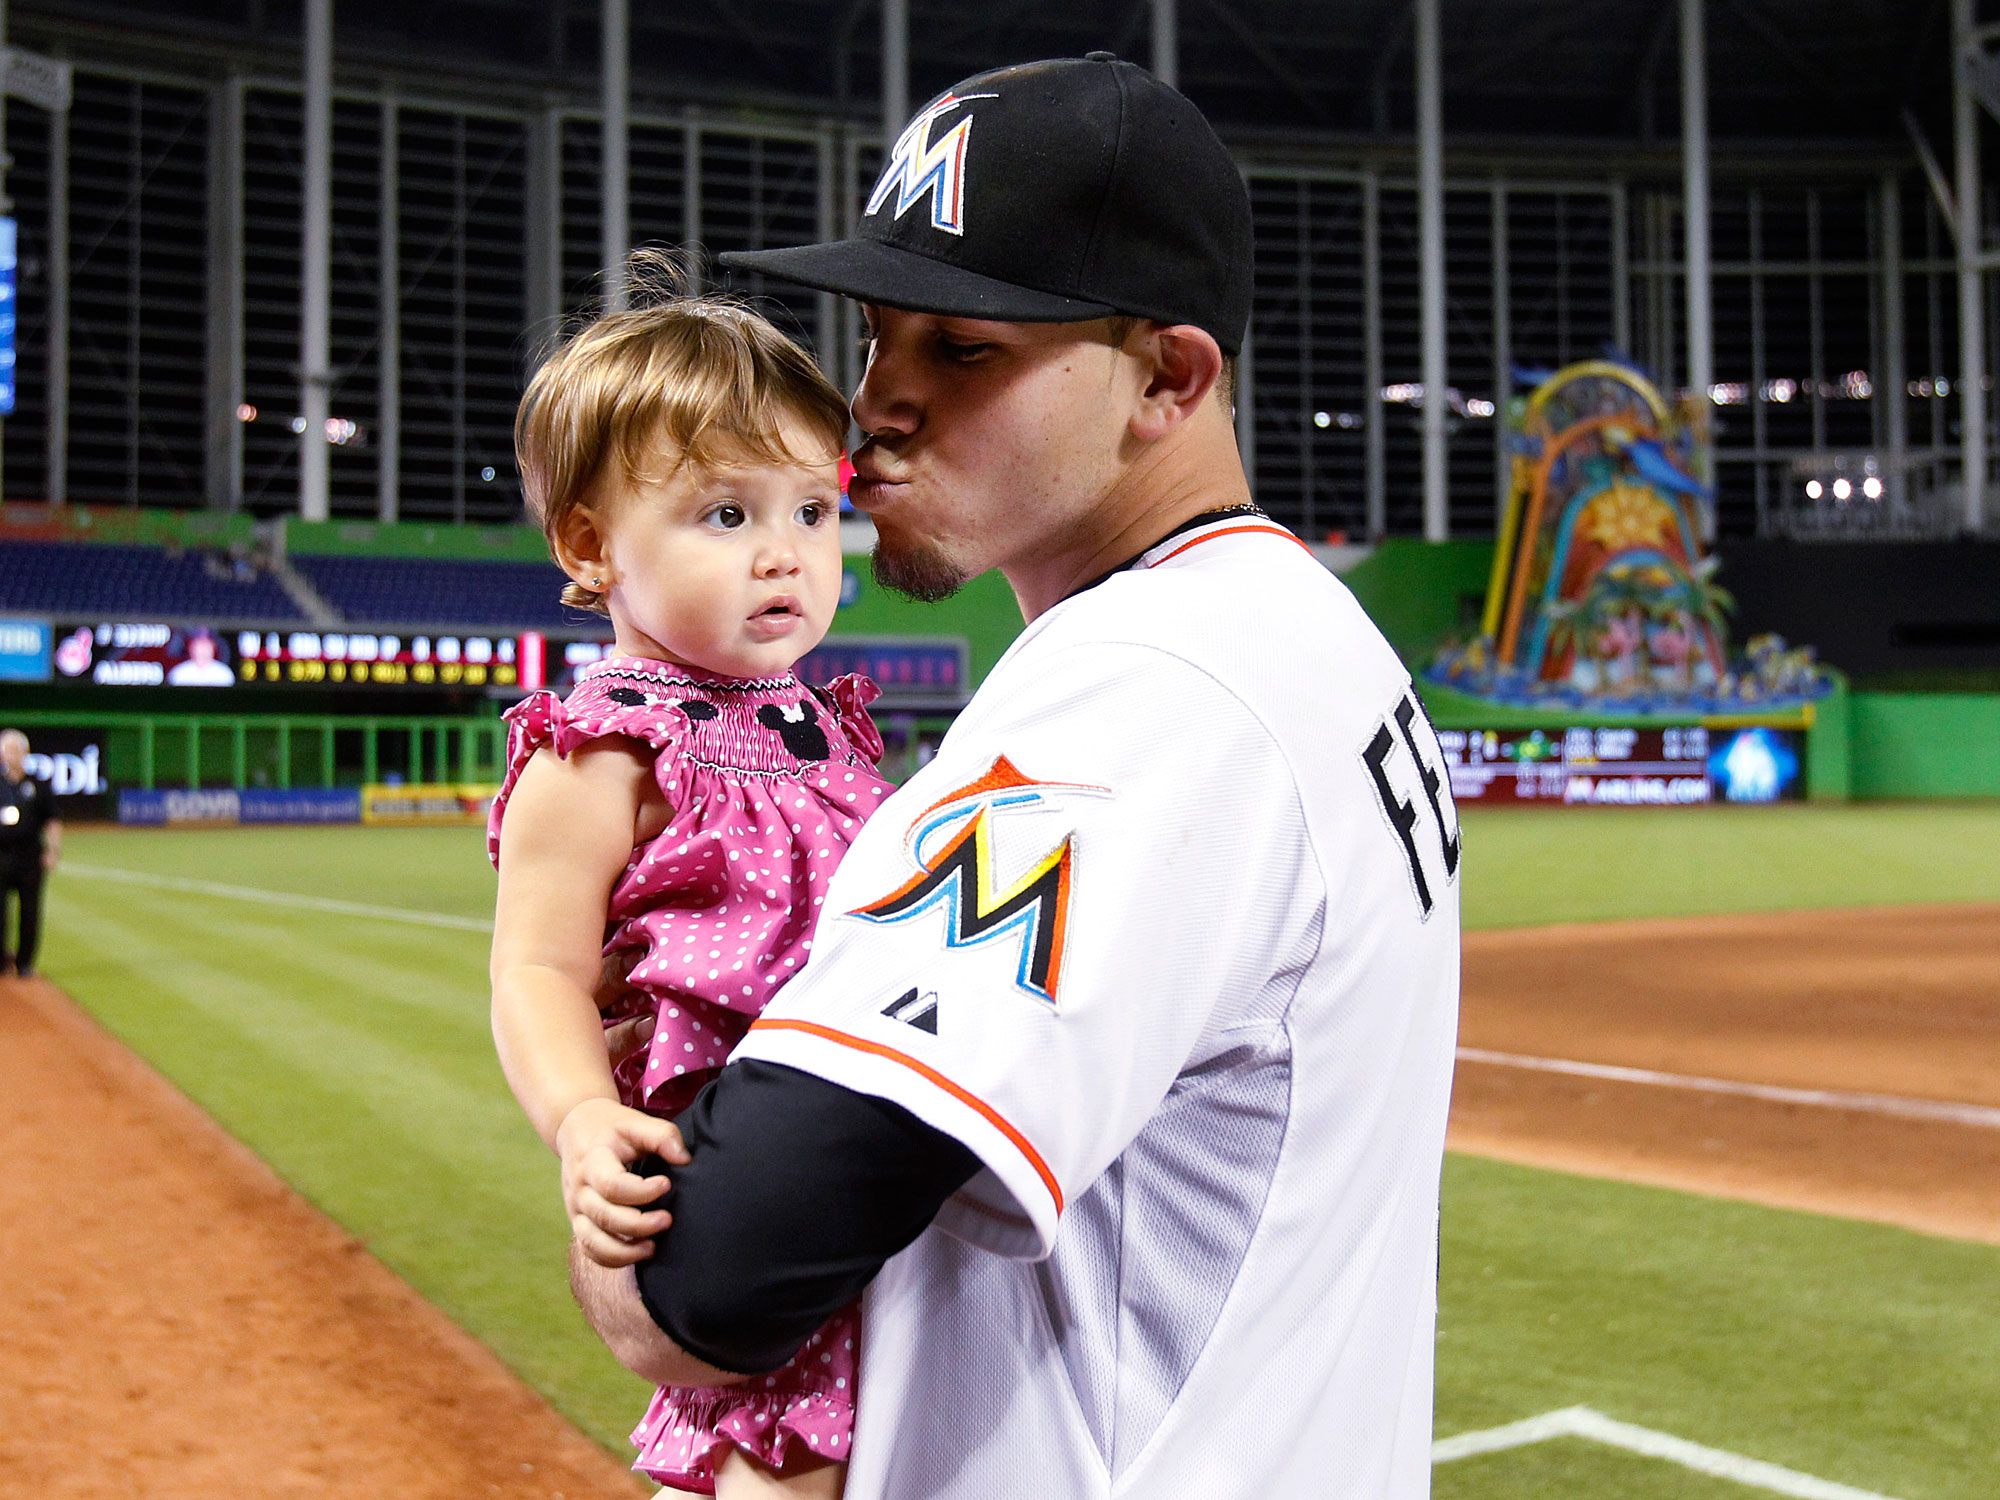 Jose Fernandez with his sister, Saleth Jimenez, after beating the Indians on Aug. 2, 2013.